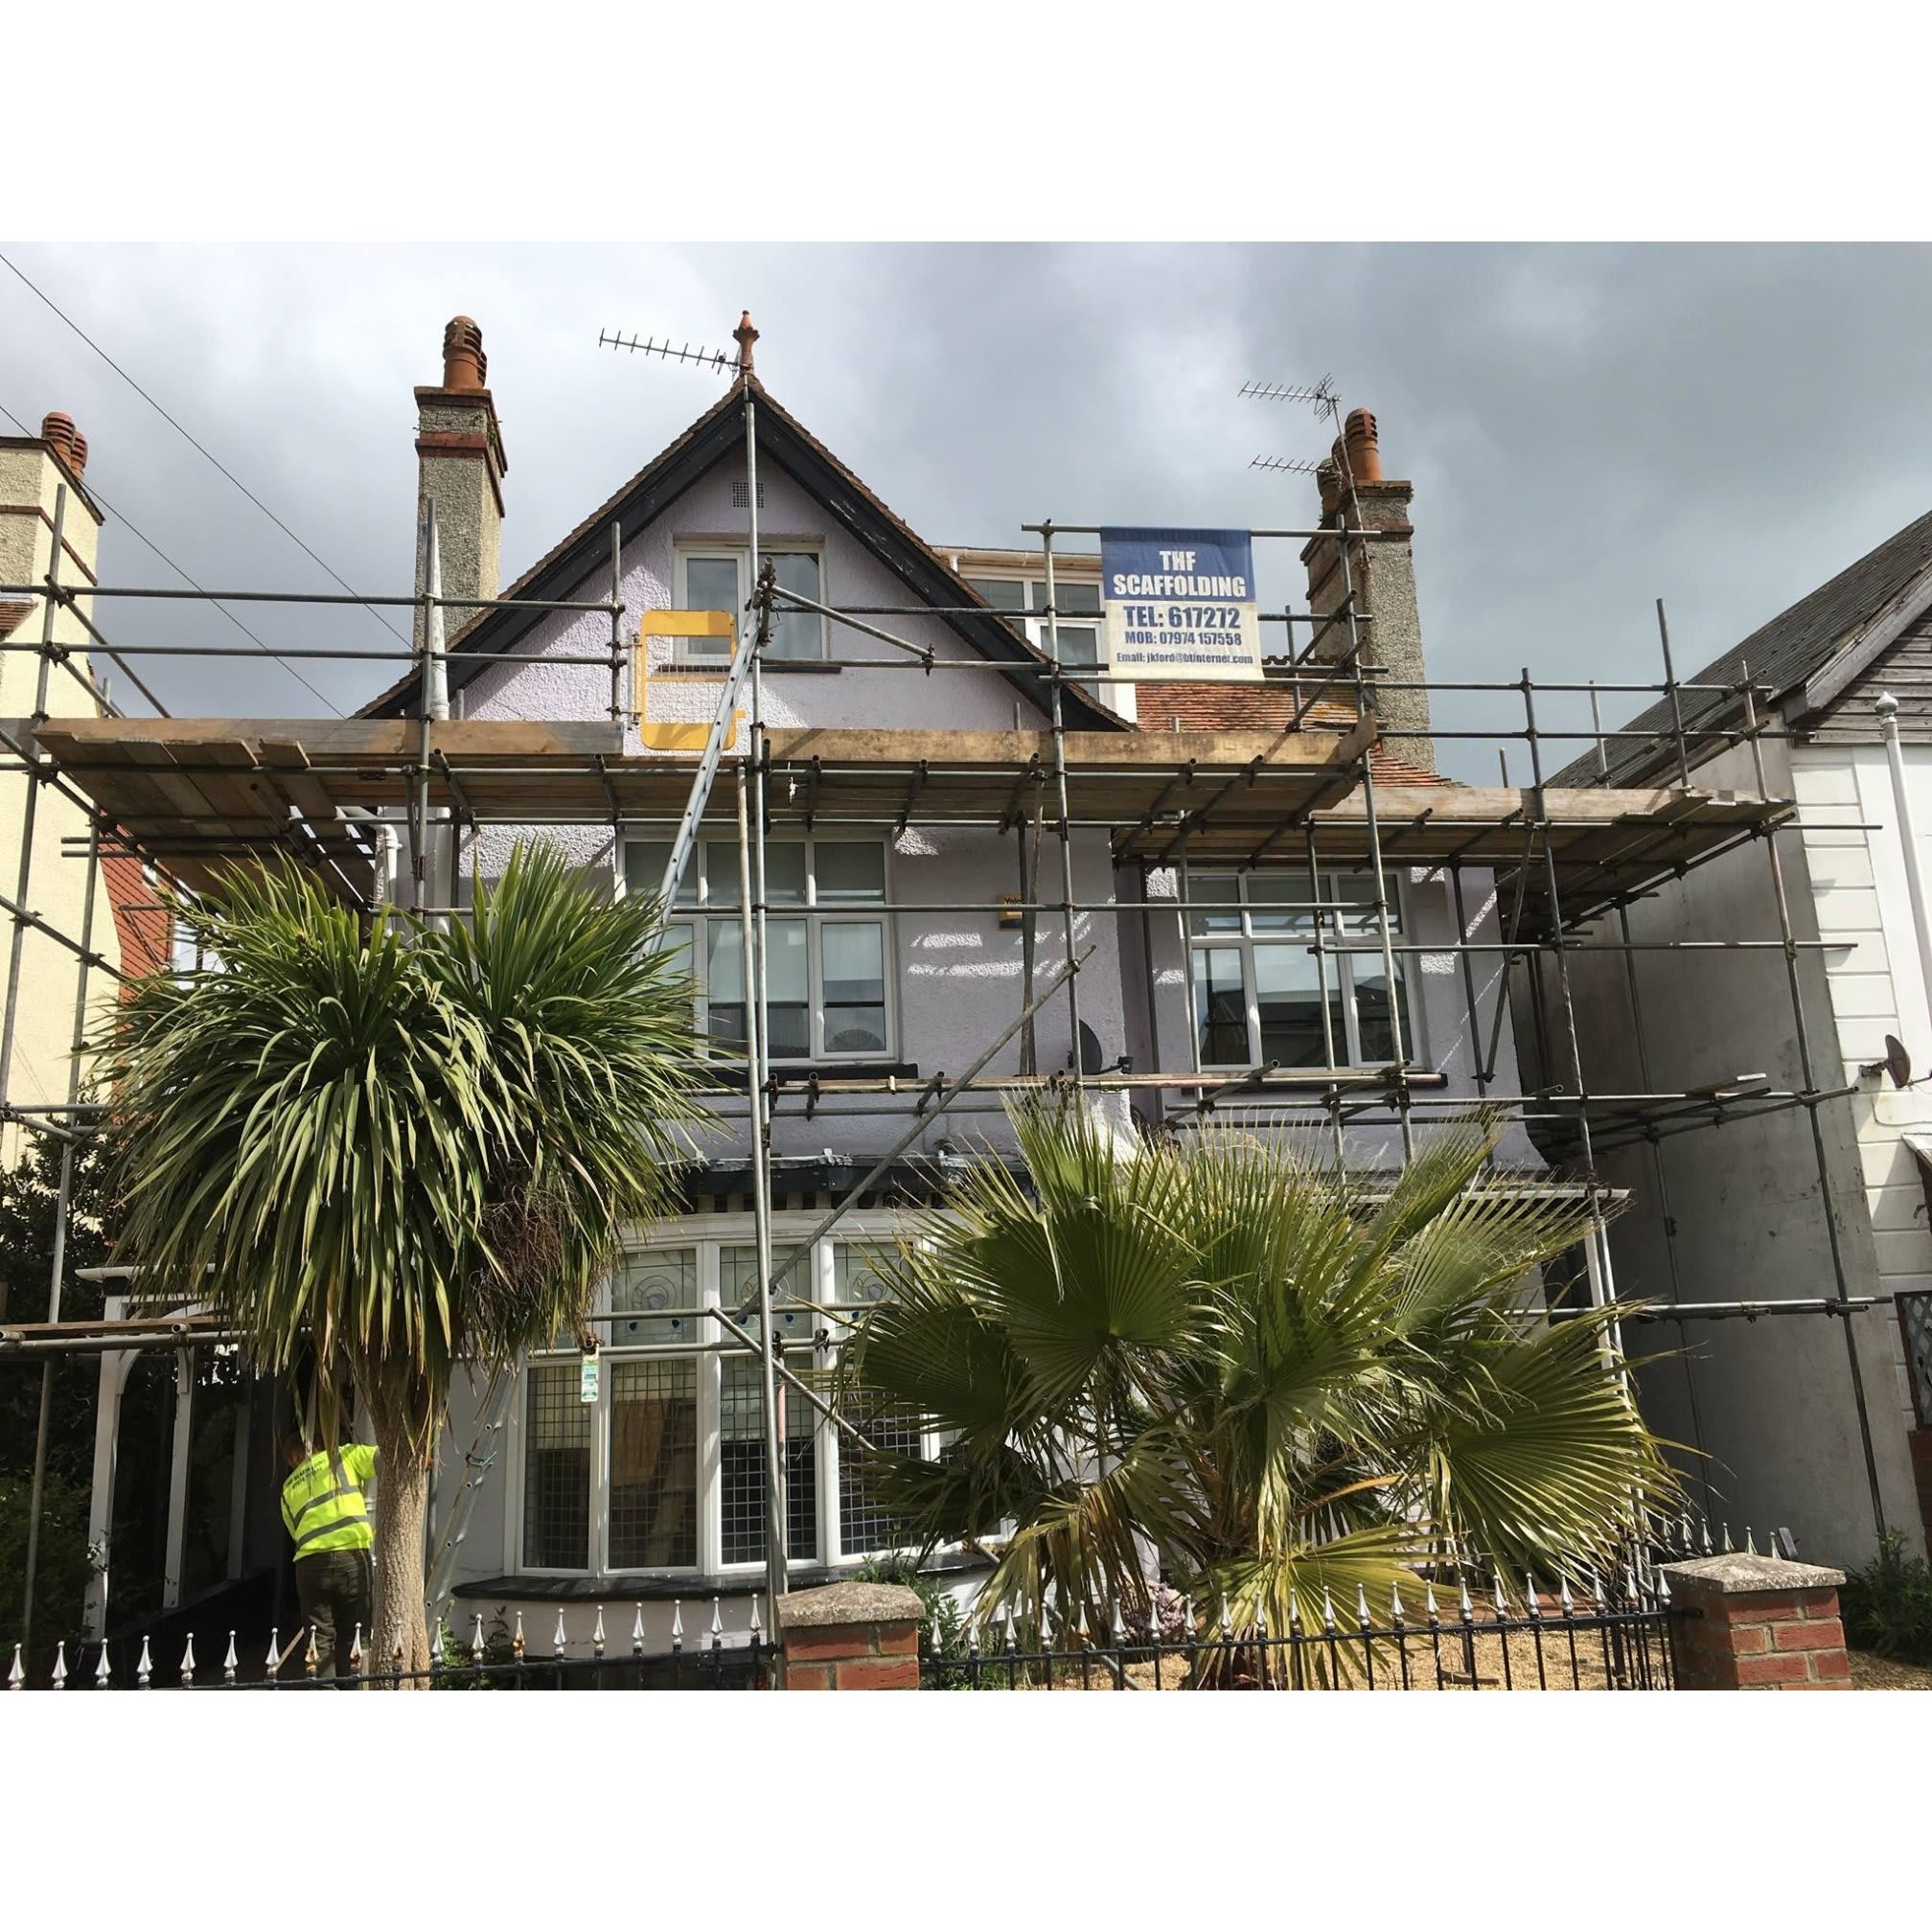 T.H.F Scaffolding - Ryde, Isle of Wight PO33 4AX - 01983 617272 | ShowMeLocal.com